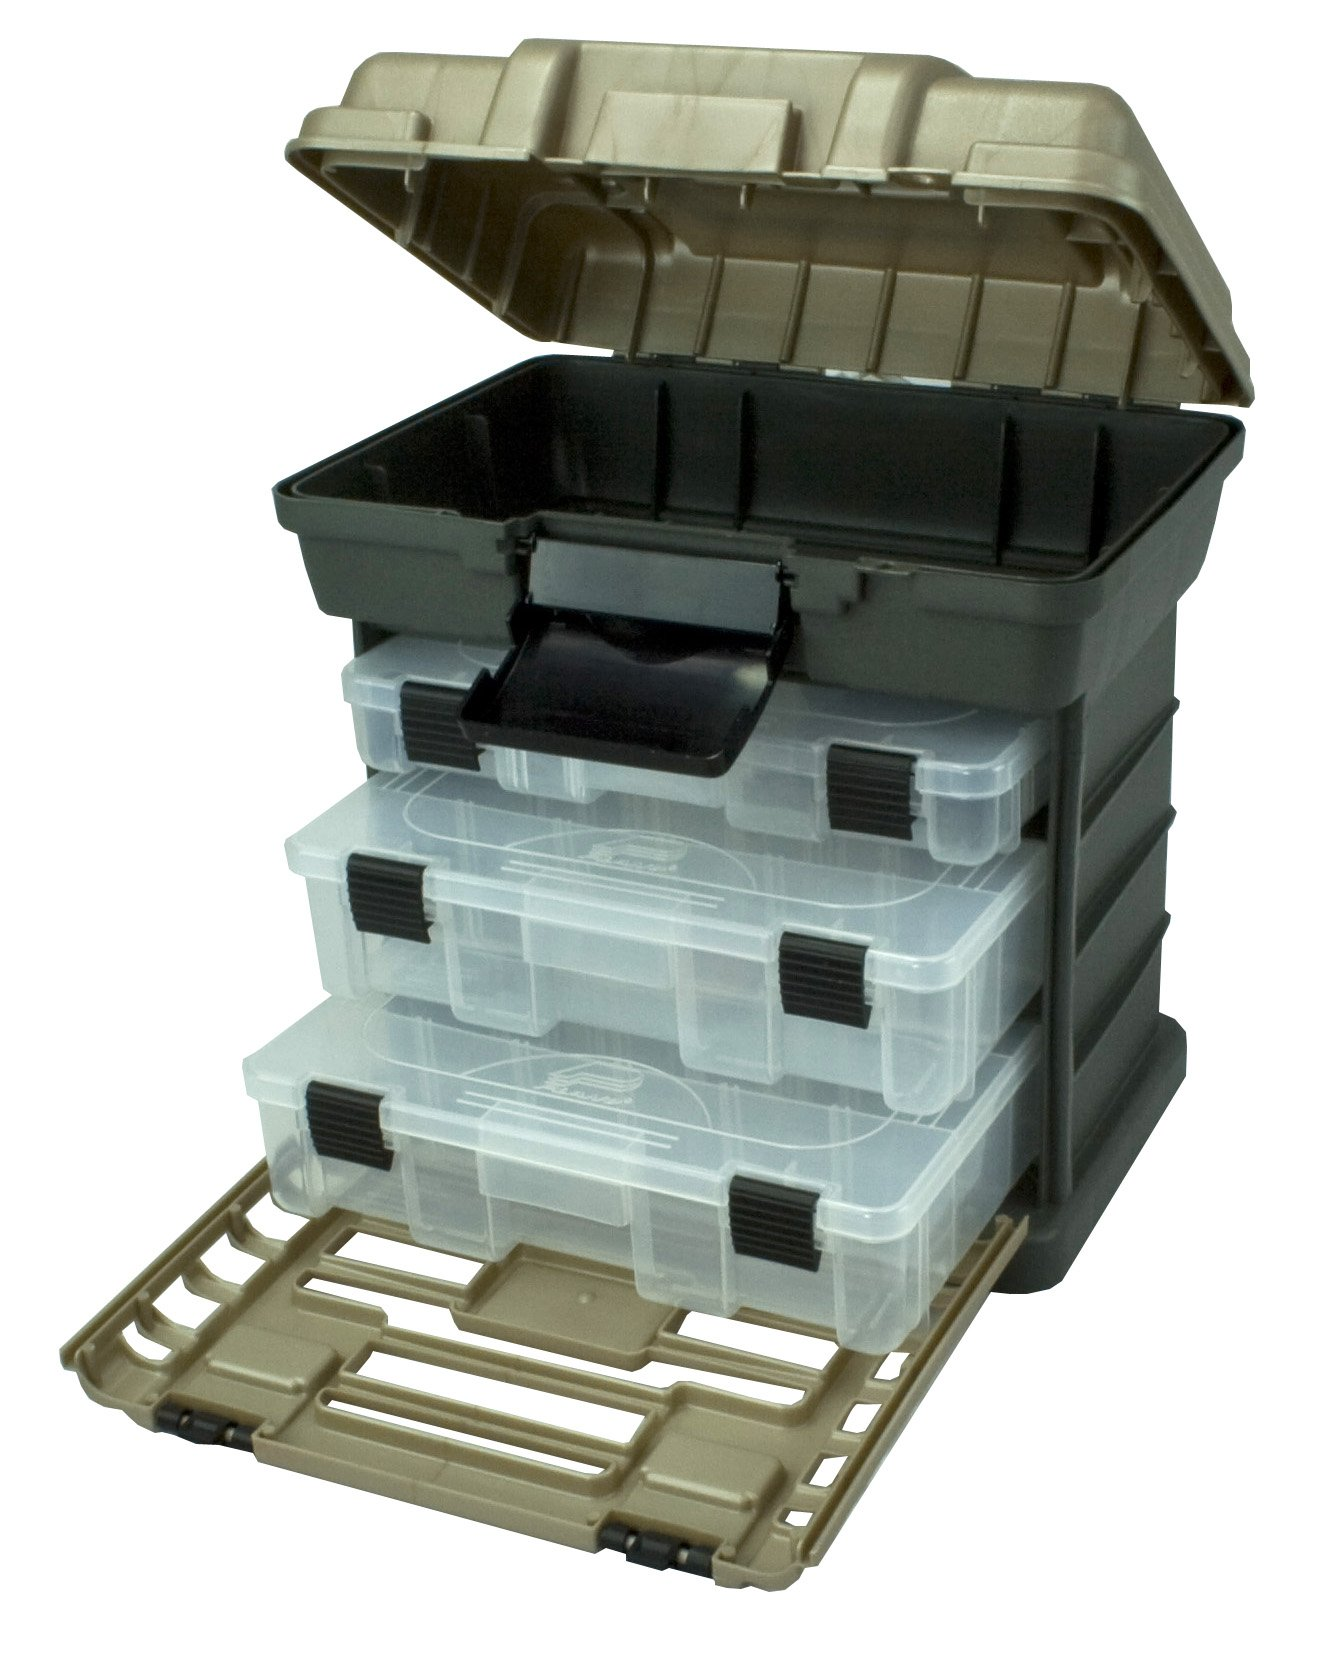 Plano Molding 1363 Stow N Go Toolbox, Graphite Gray and Sandstone by Plano Molding